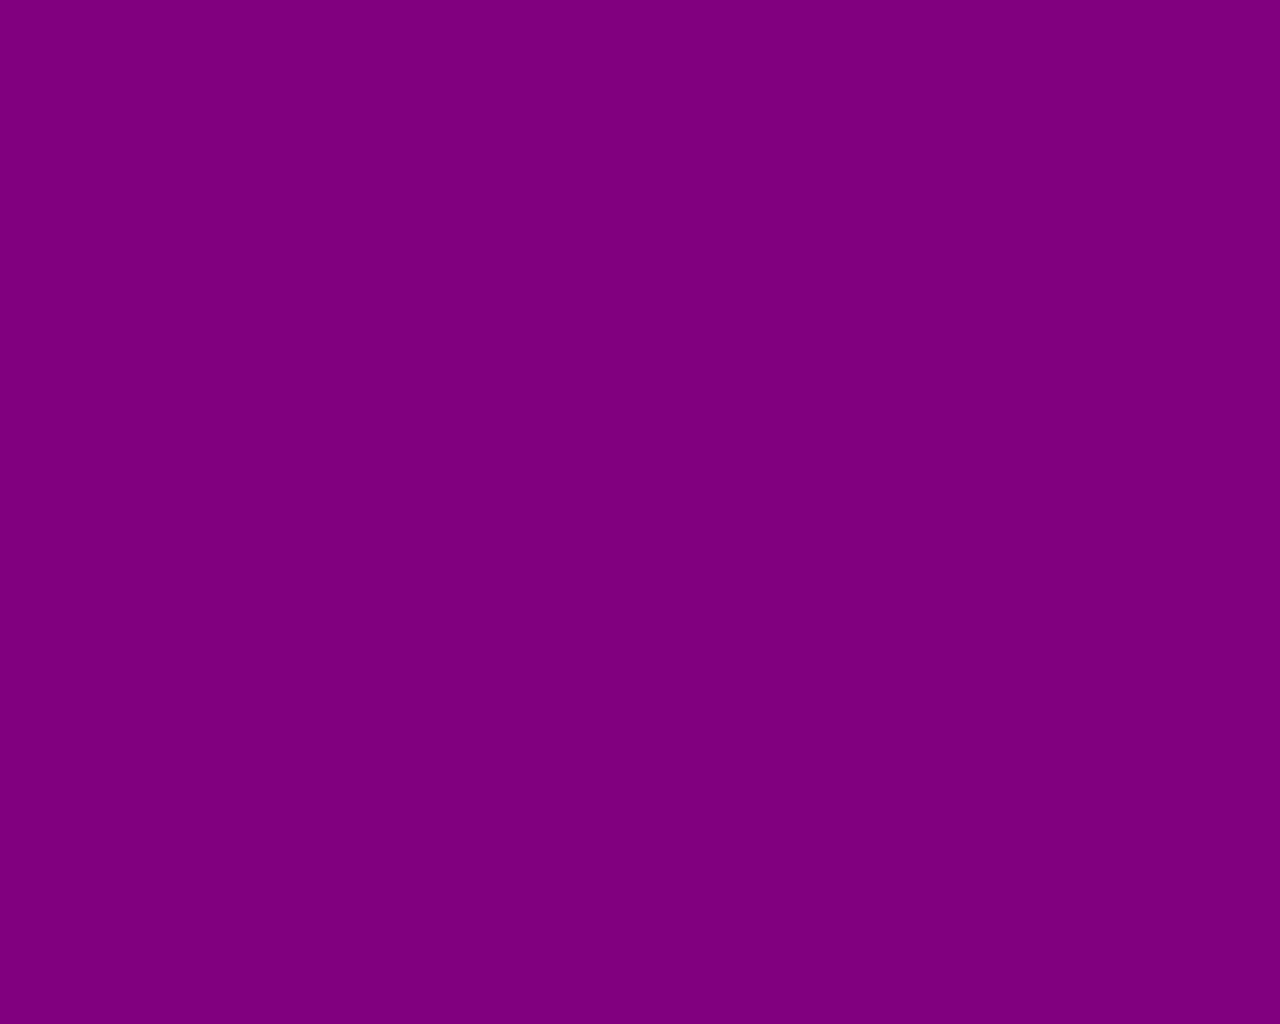 1280x1024 Purple Web Solid Color Background